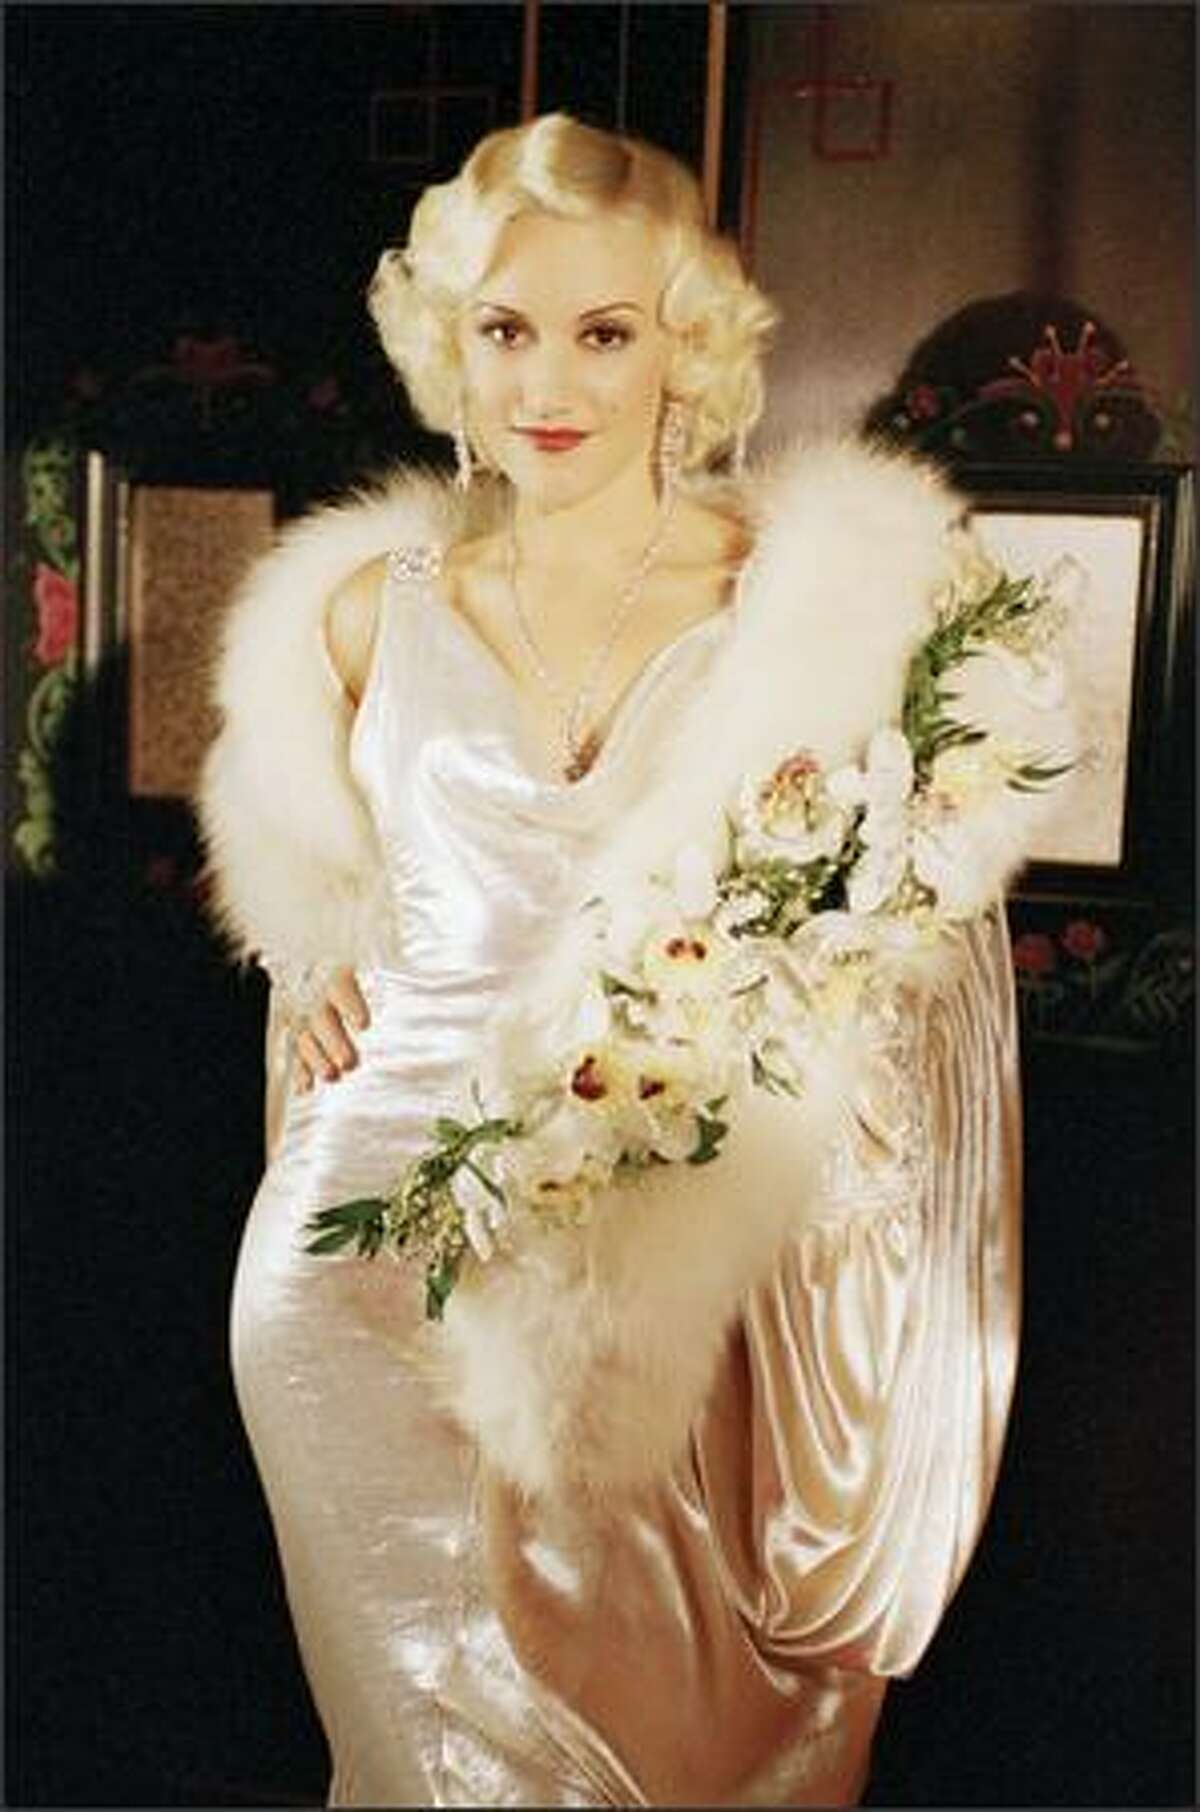 Gwen Stefani stars as Jean Harlow in